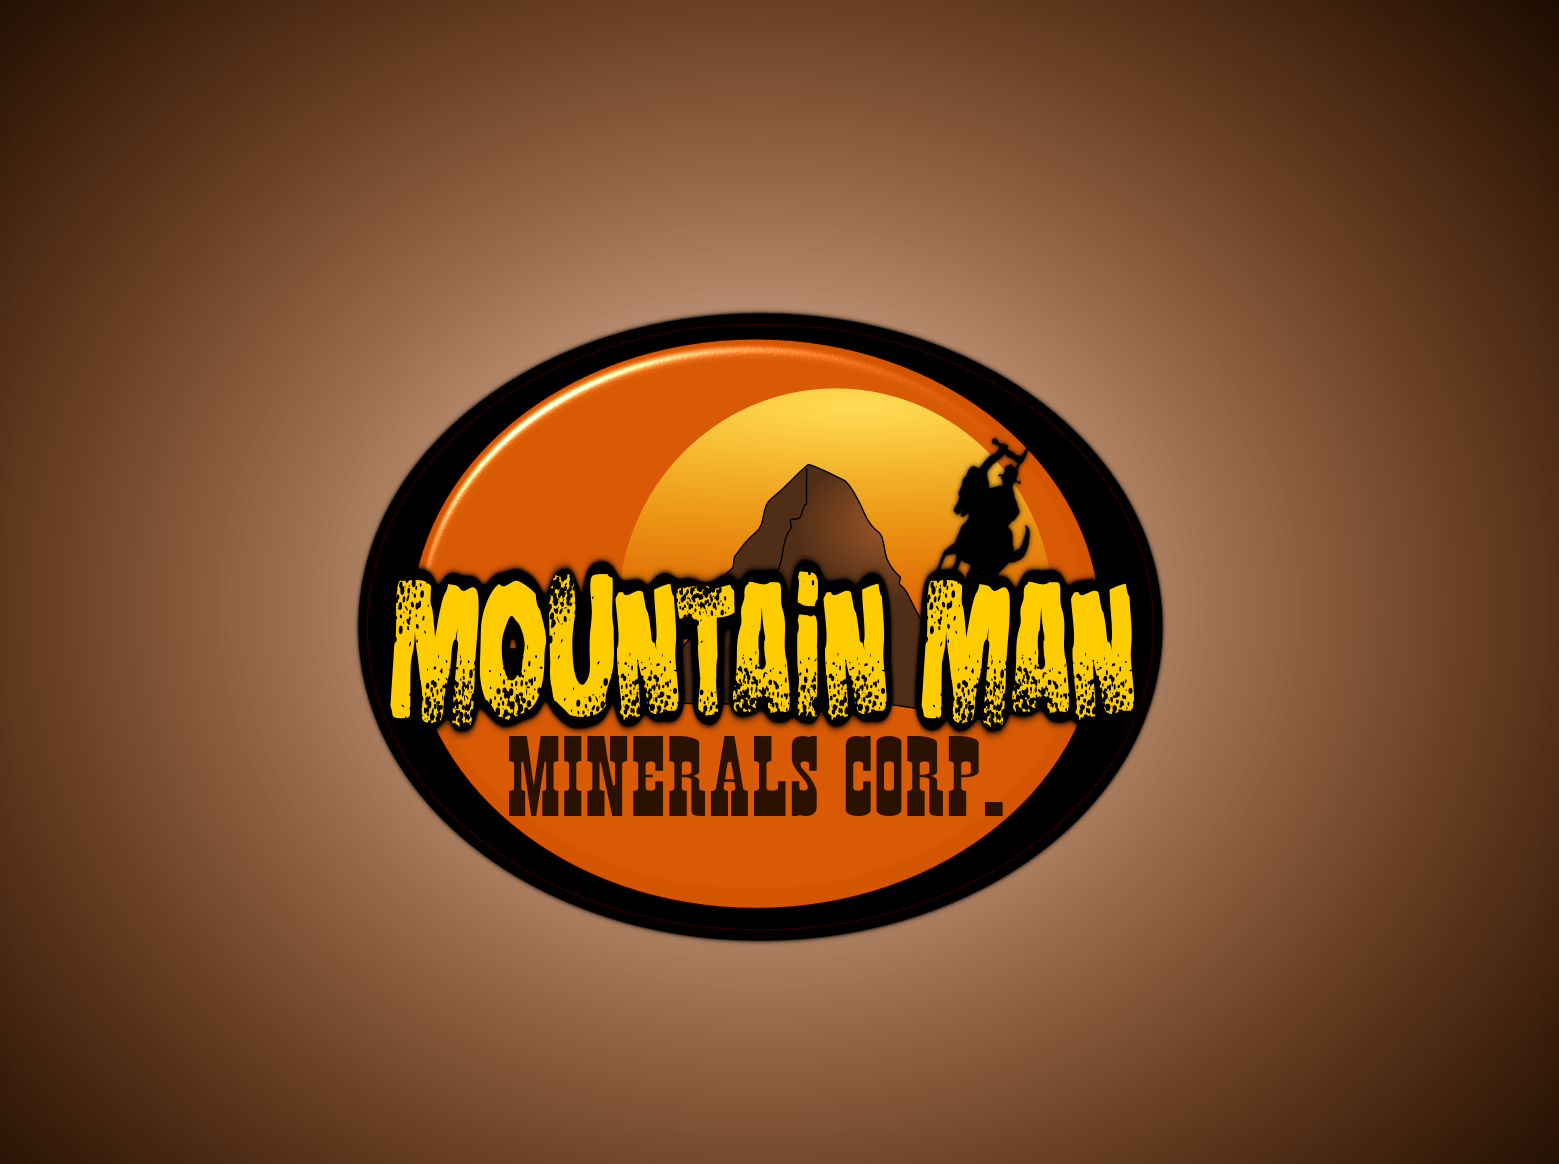 Logo Design by Joseph calunsag Cagaanan - Entry No. 19 in the Logo Design Contest Mountian Man Minerals Corp. Logo Design.